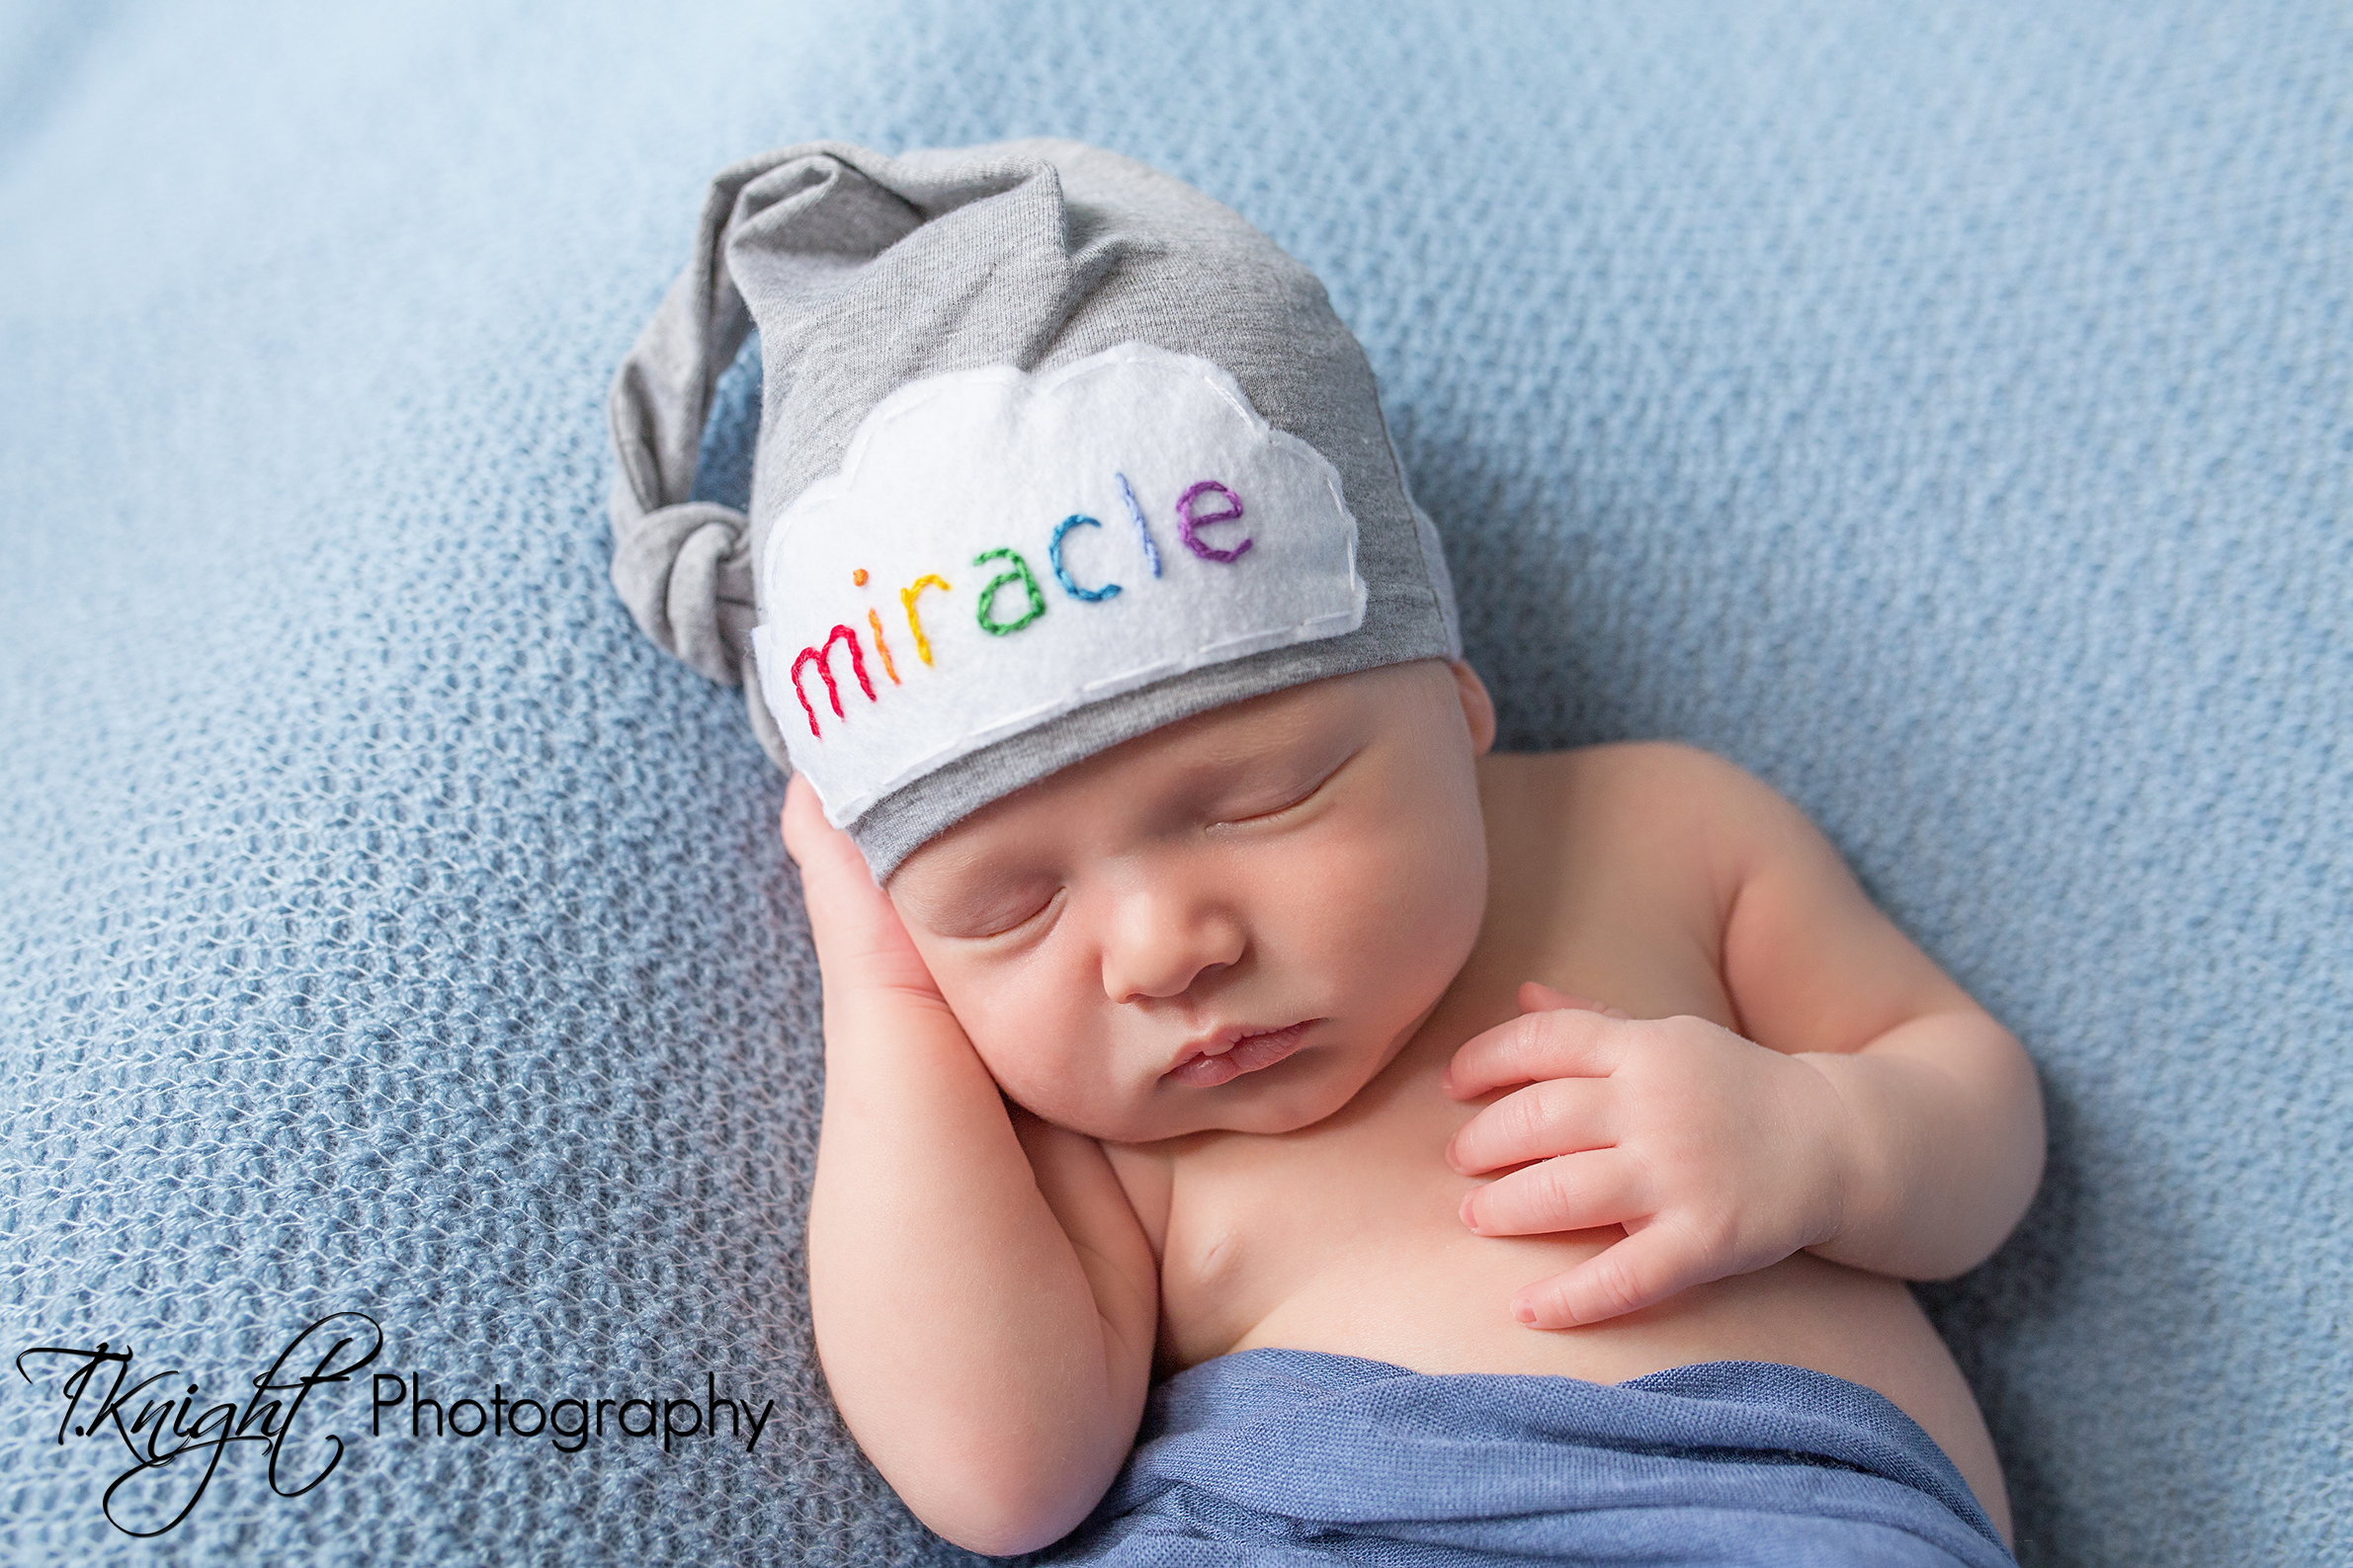 T.Knight Photography | Kansas City Newborn Photographer